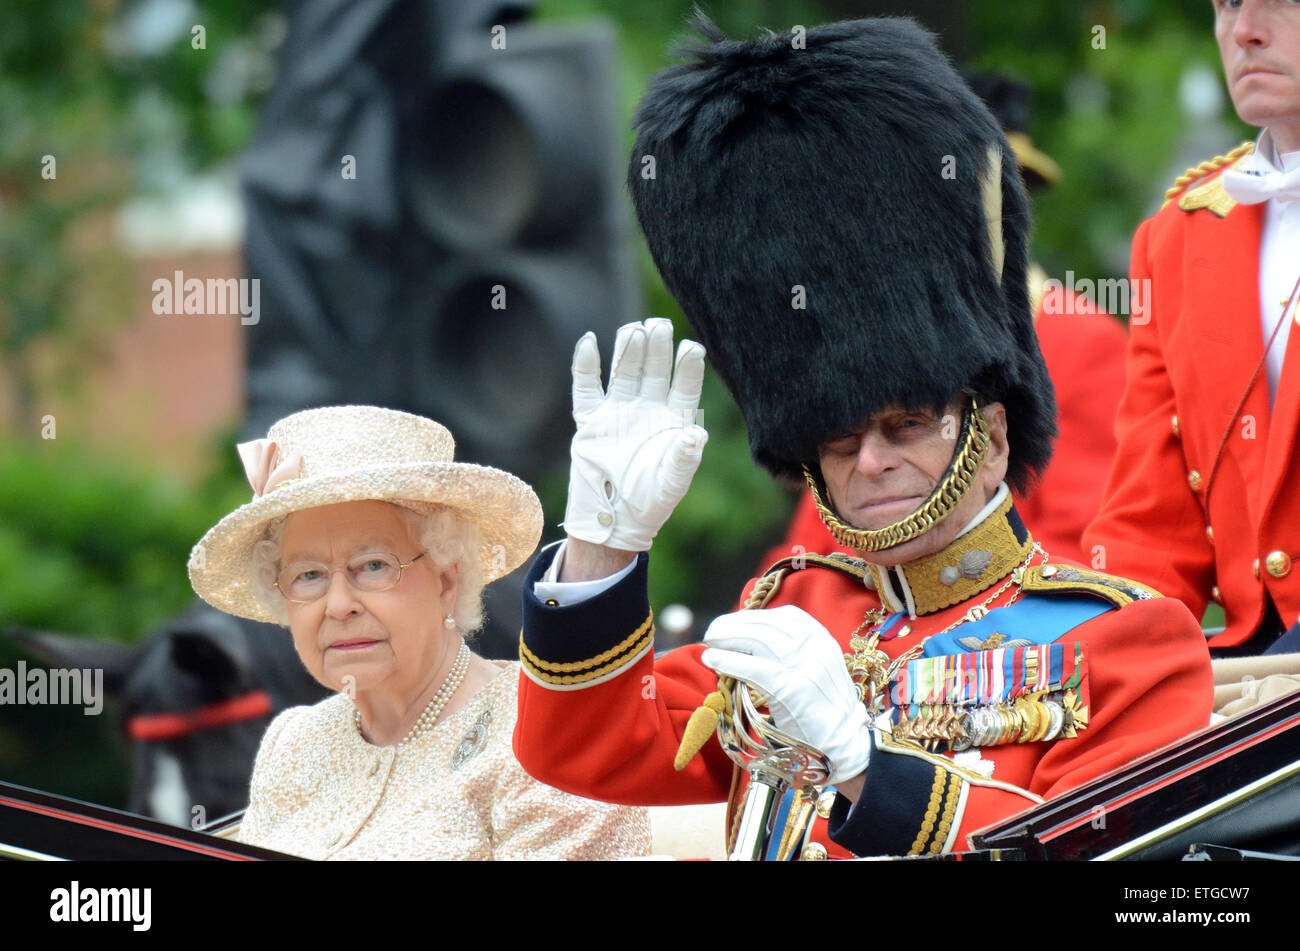 The Queen and Prince Philip. Trooping of the Colour in The Mall. London. Duke of Edinburgh in uniform with medals. - Stock Image